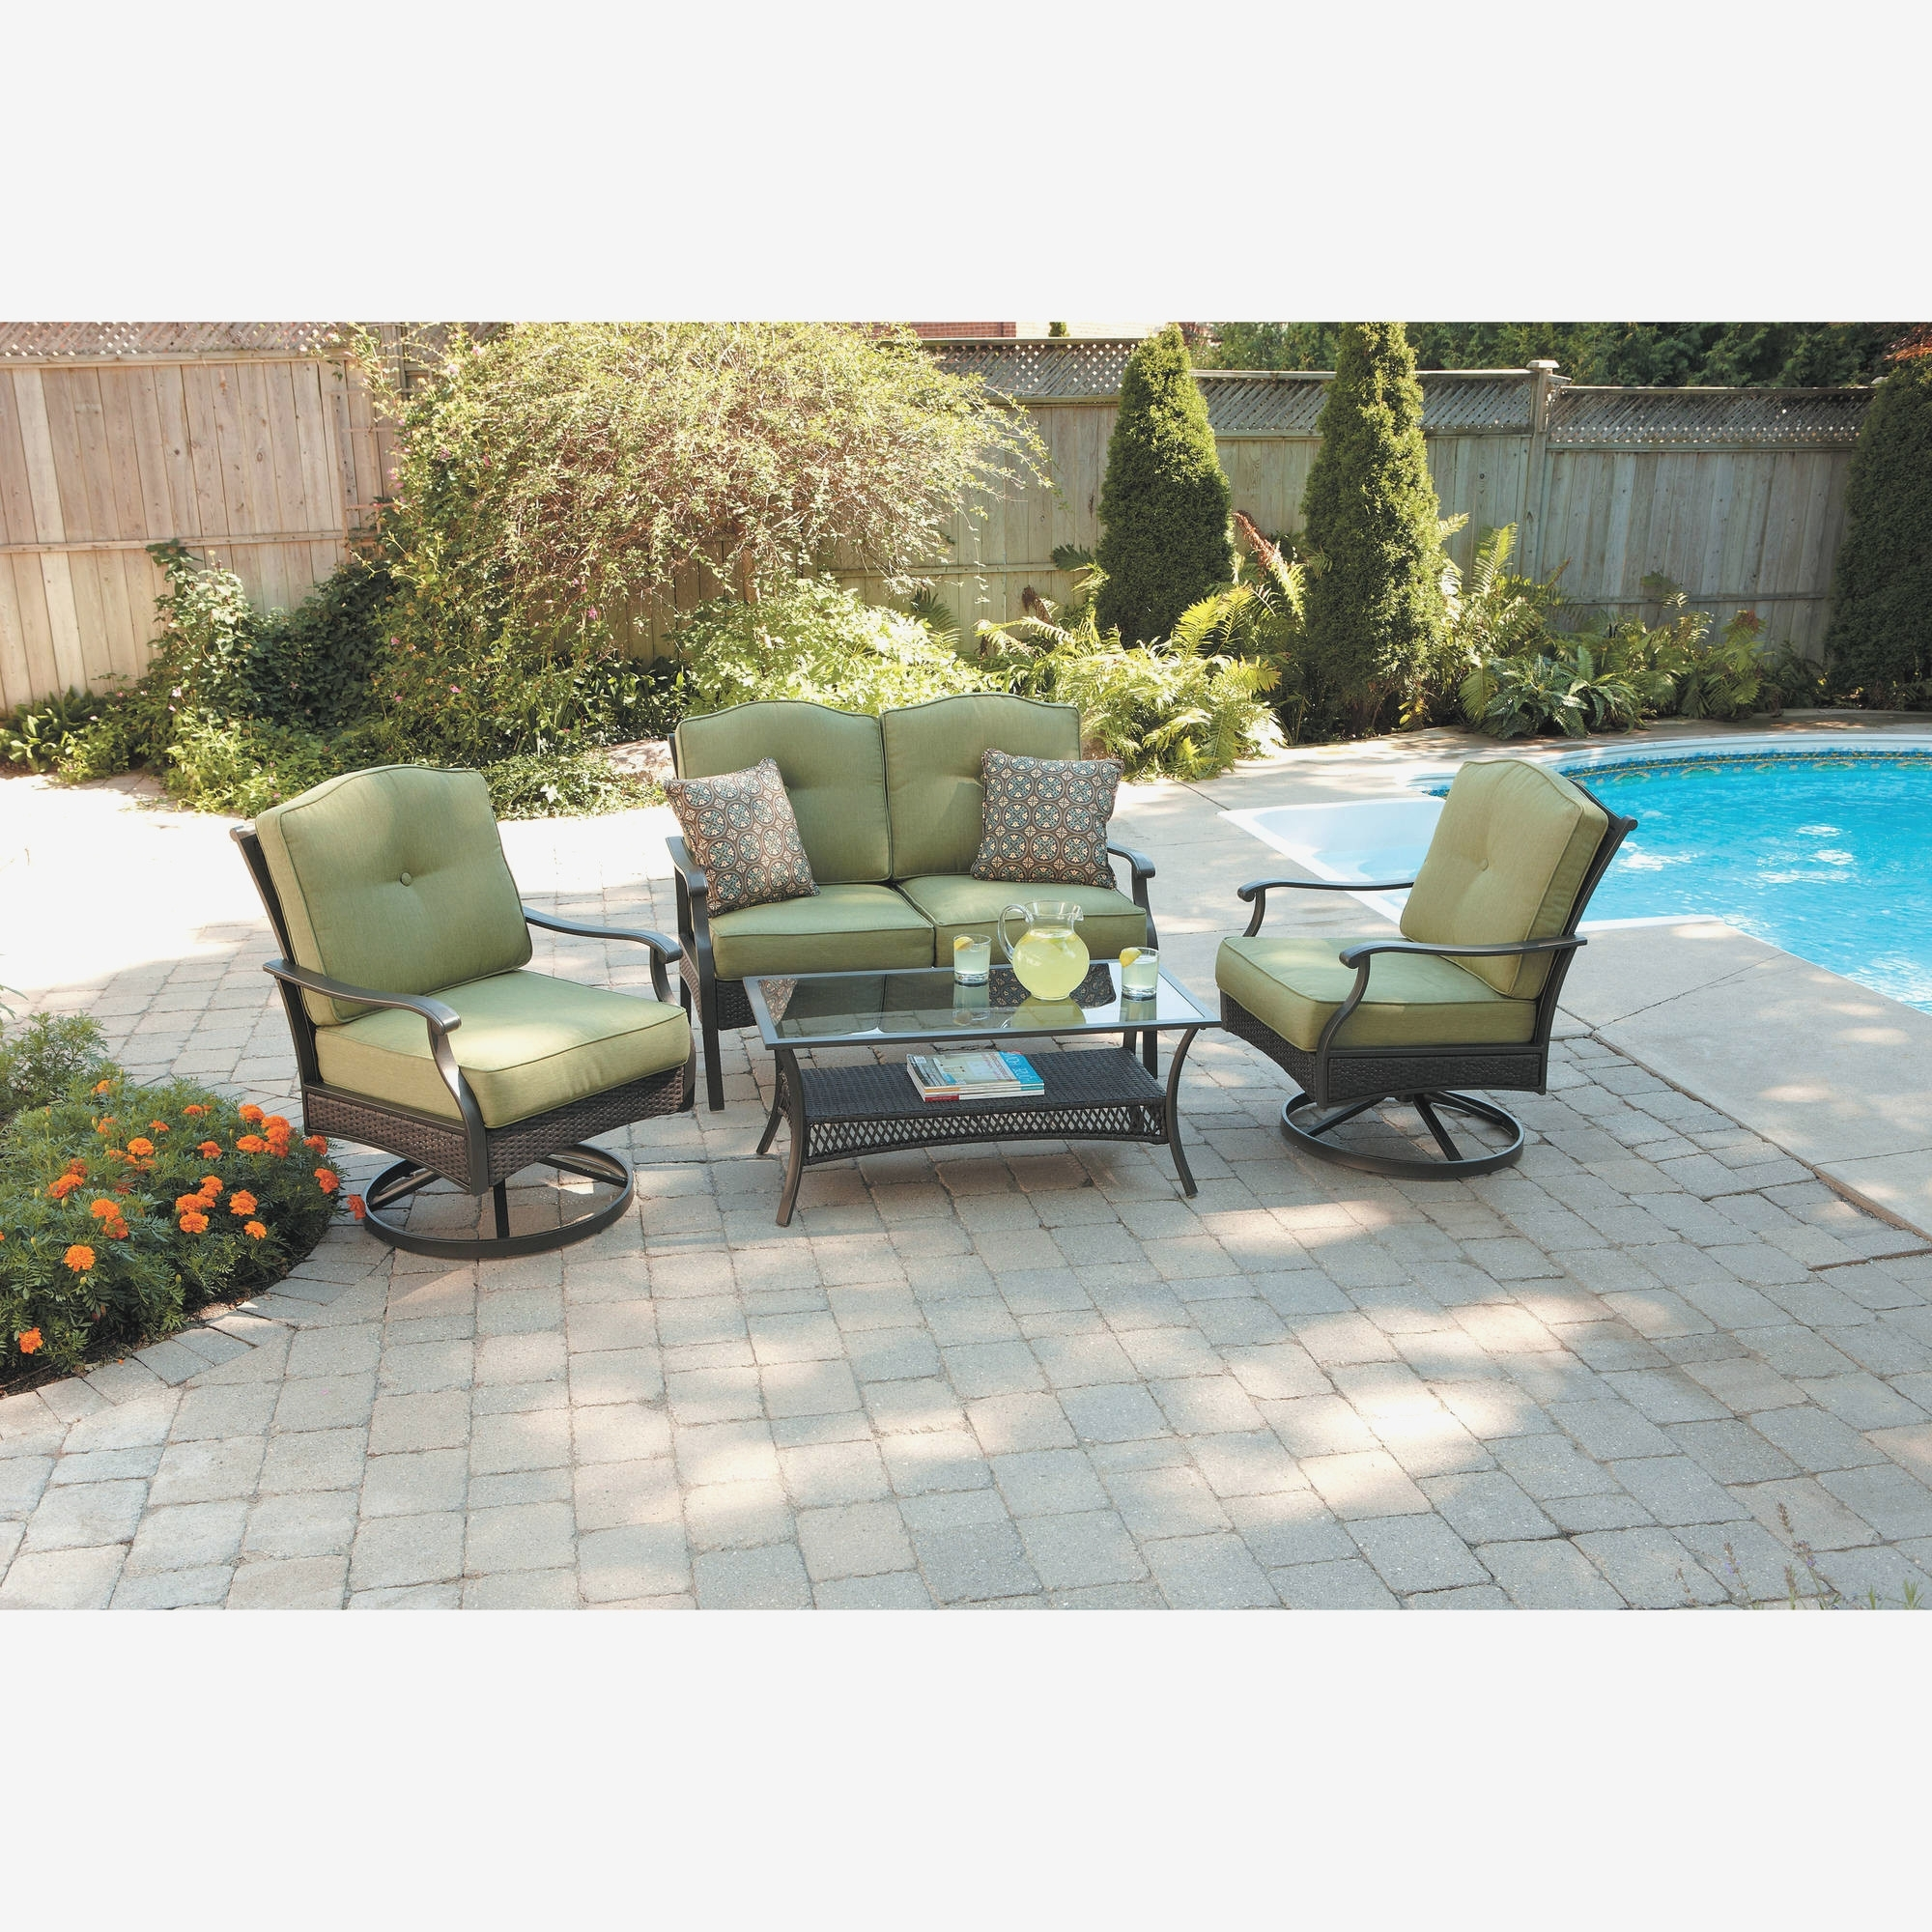 Preferred Sears Patio Furniture Conversation Sets Regarding Sears High Top Patio Furniture Awesome Sears Patio Swing Luxury (View 2 of 20)